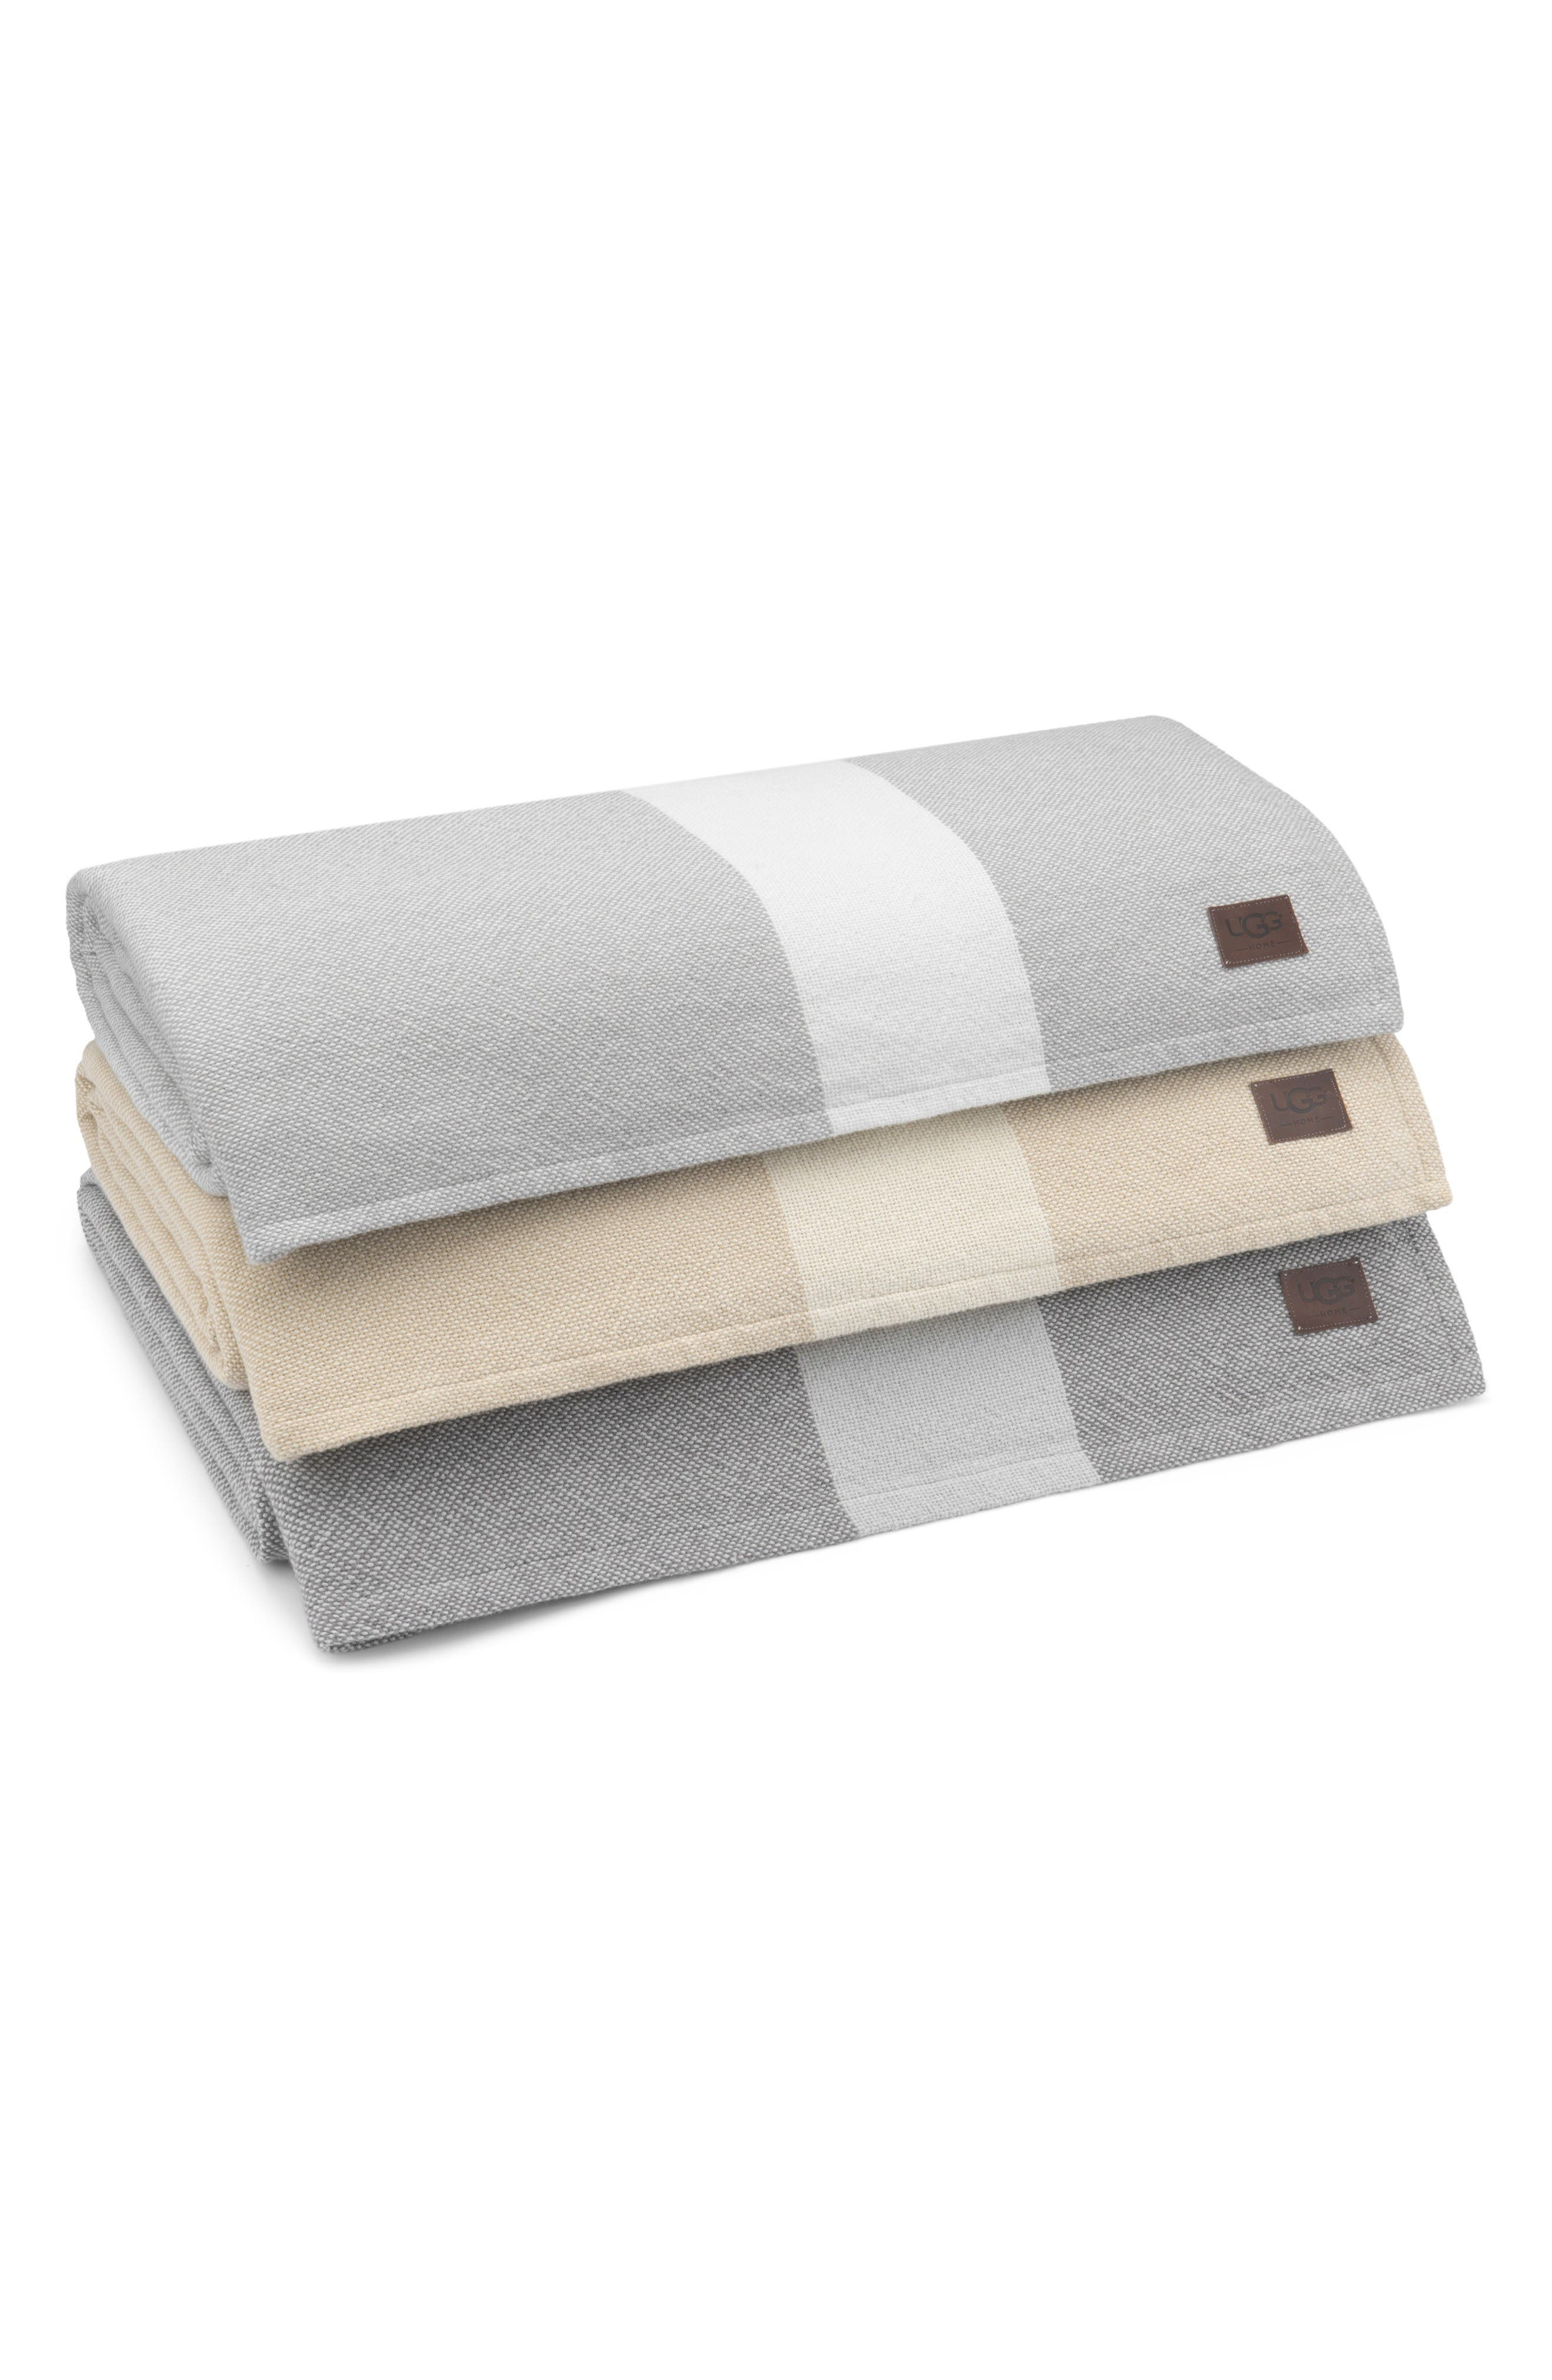 Alternate Image 2  - UGG® Coastal Heritage Blanket